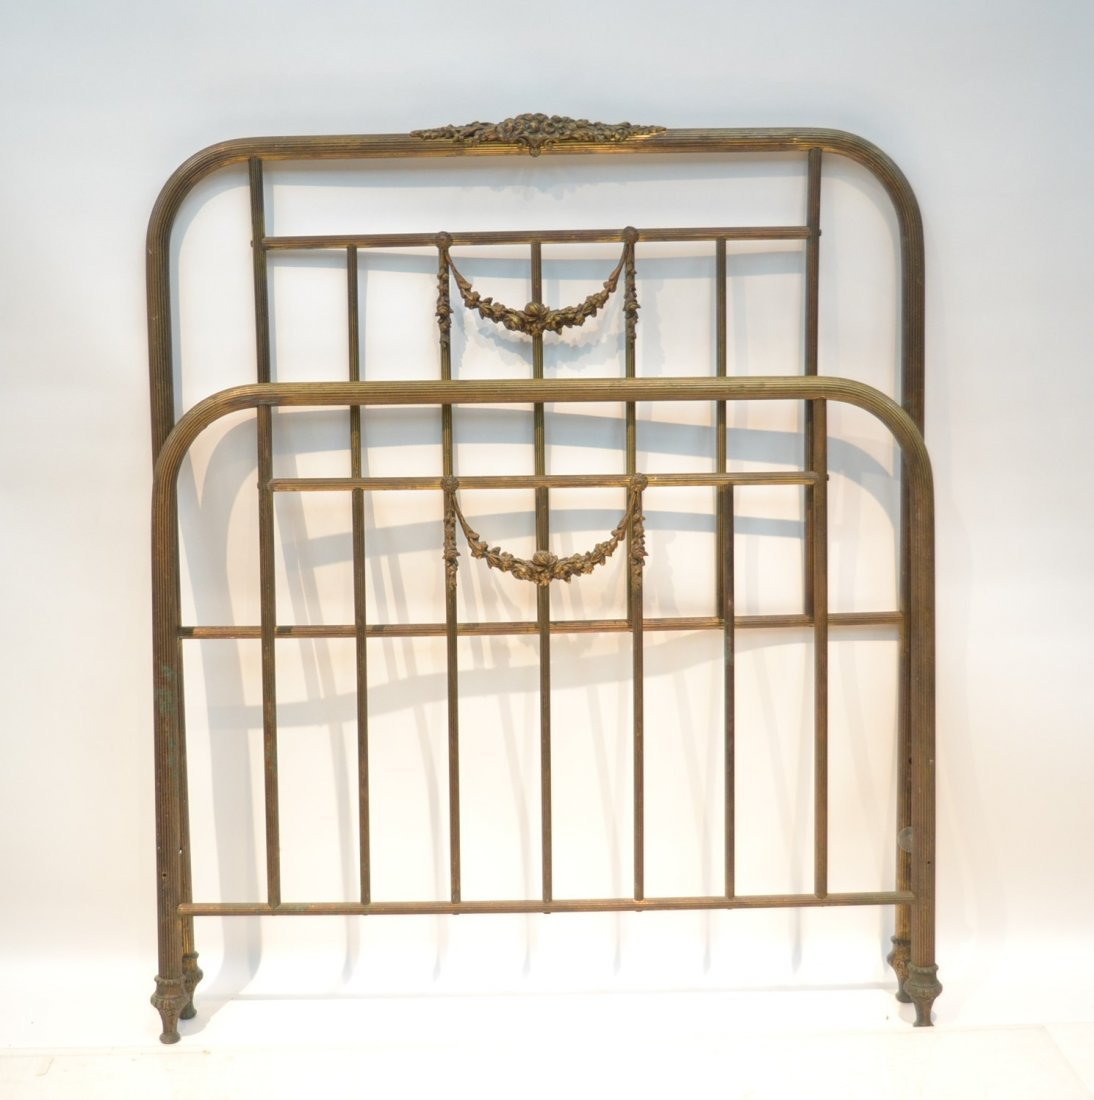 BRASS SINGLE BED WITH FLORAL GARLANDS